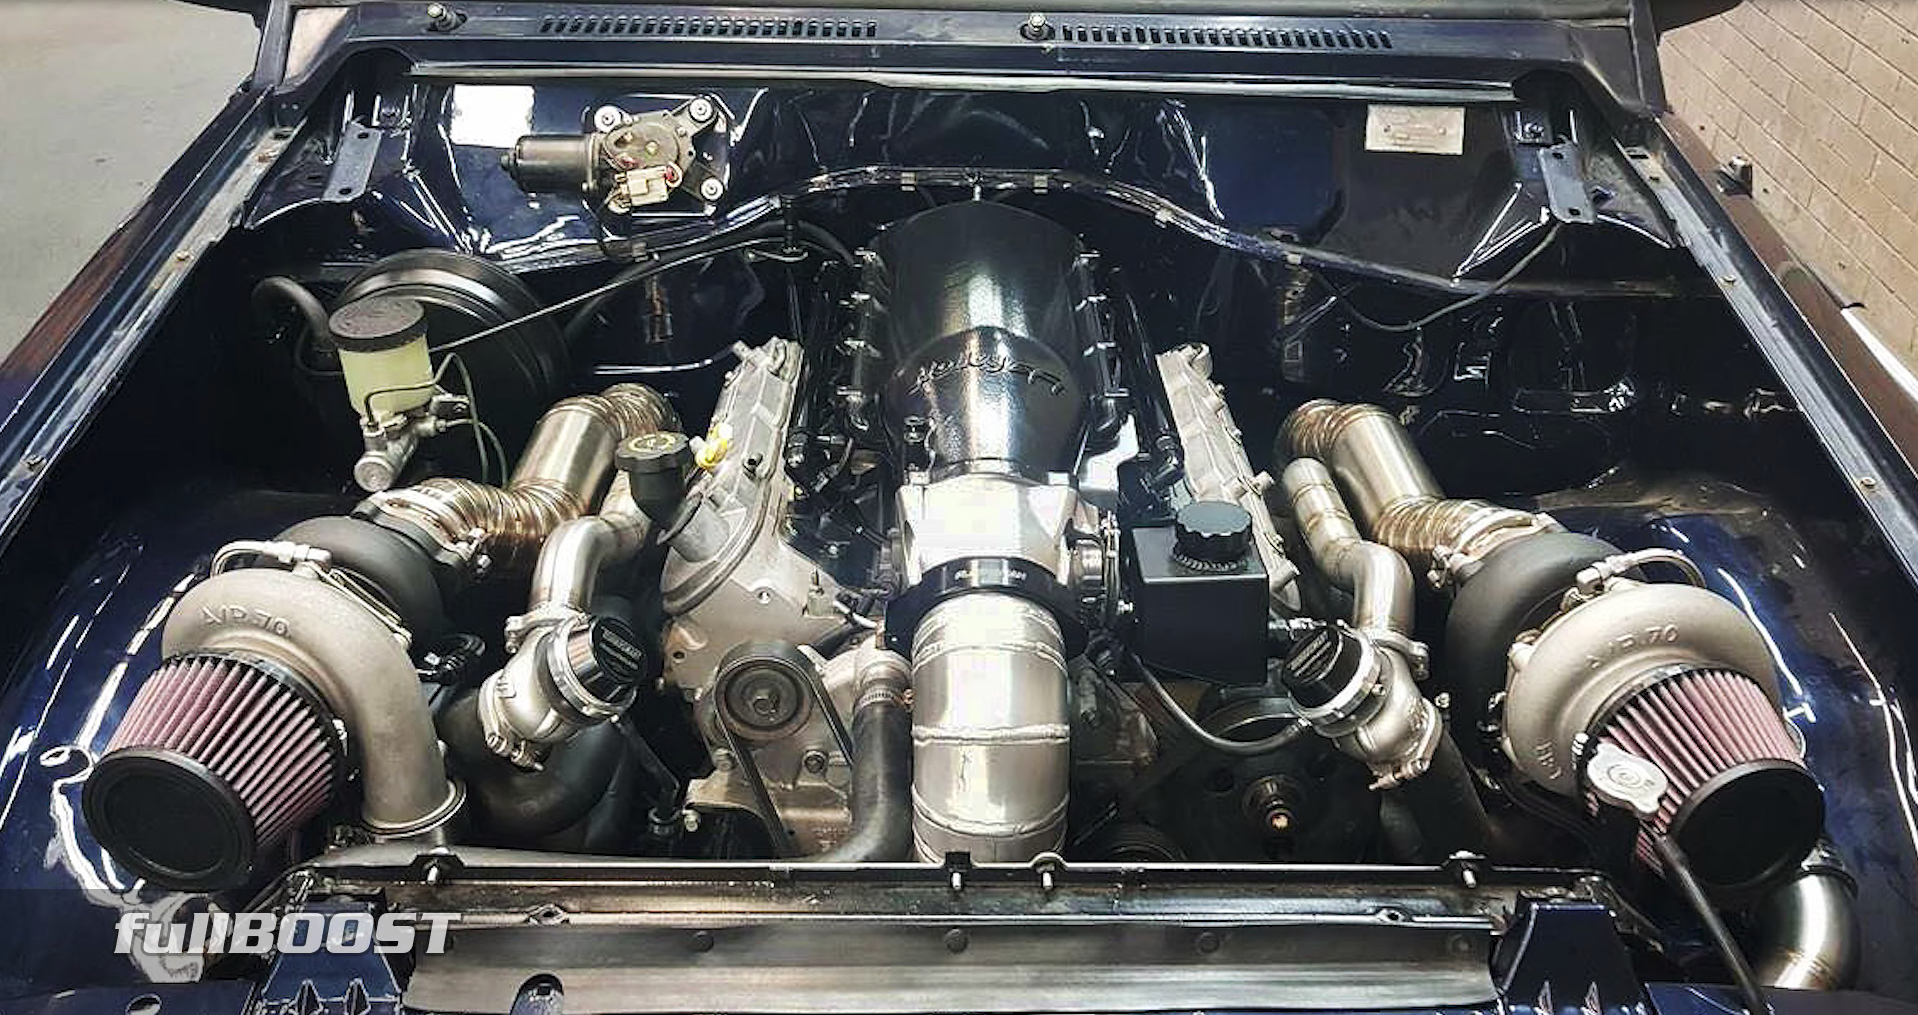 Nissan 350Z Breaks Into the 10's With a Turbo LS2 Conversion